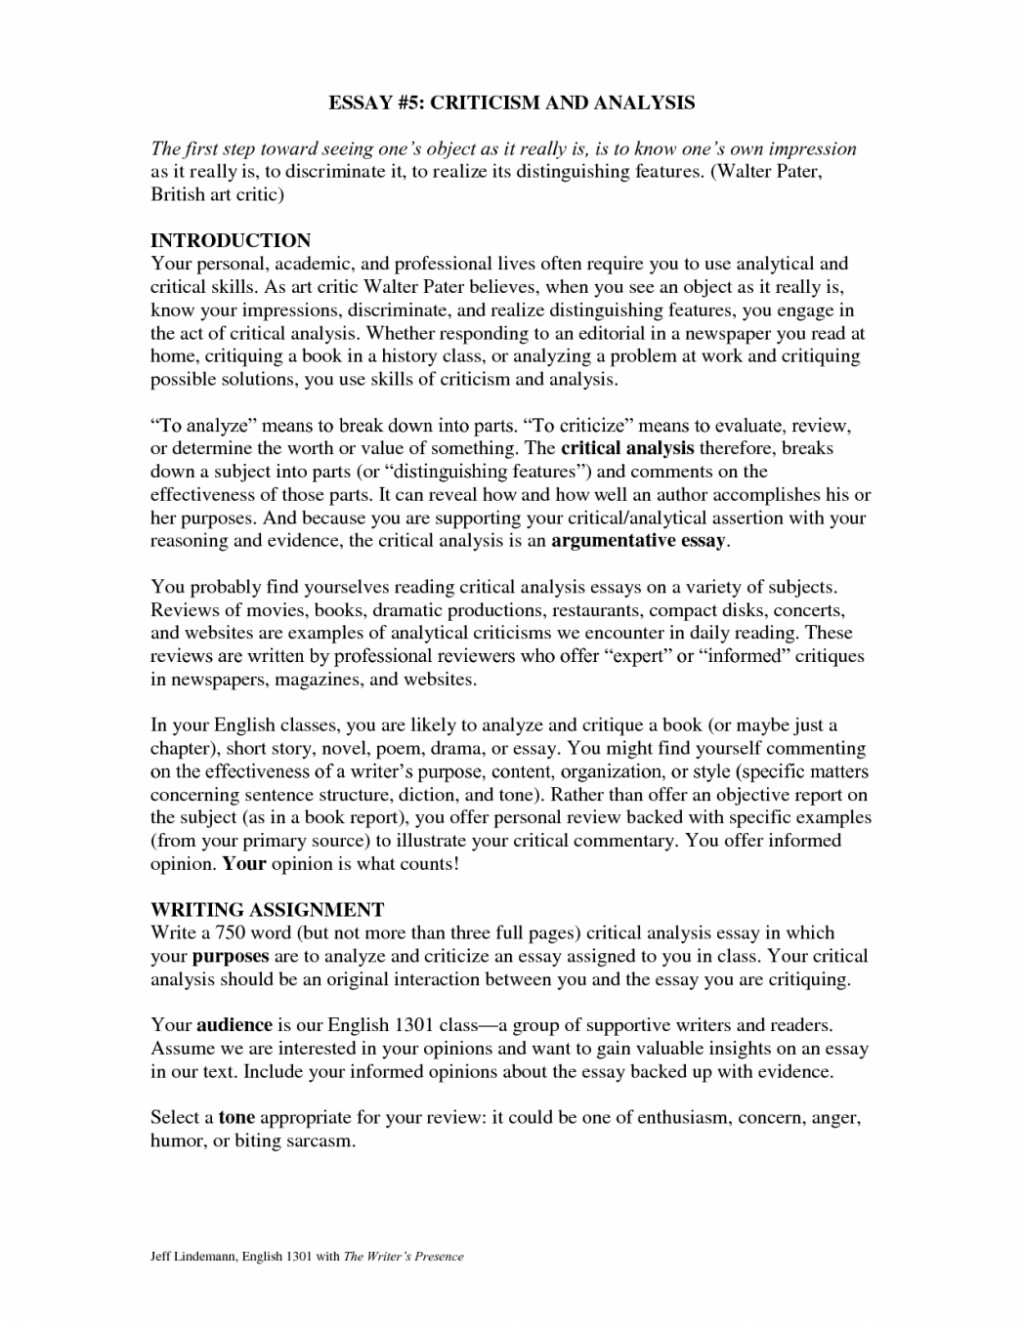 003 Essay Example Critical Review Analysis Resume Acierta Us Picture Book Brilliant Ideas Of For Tem Photo Sample Frightening Journal Article Systematic Writing A Large